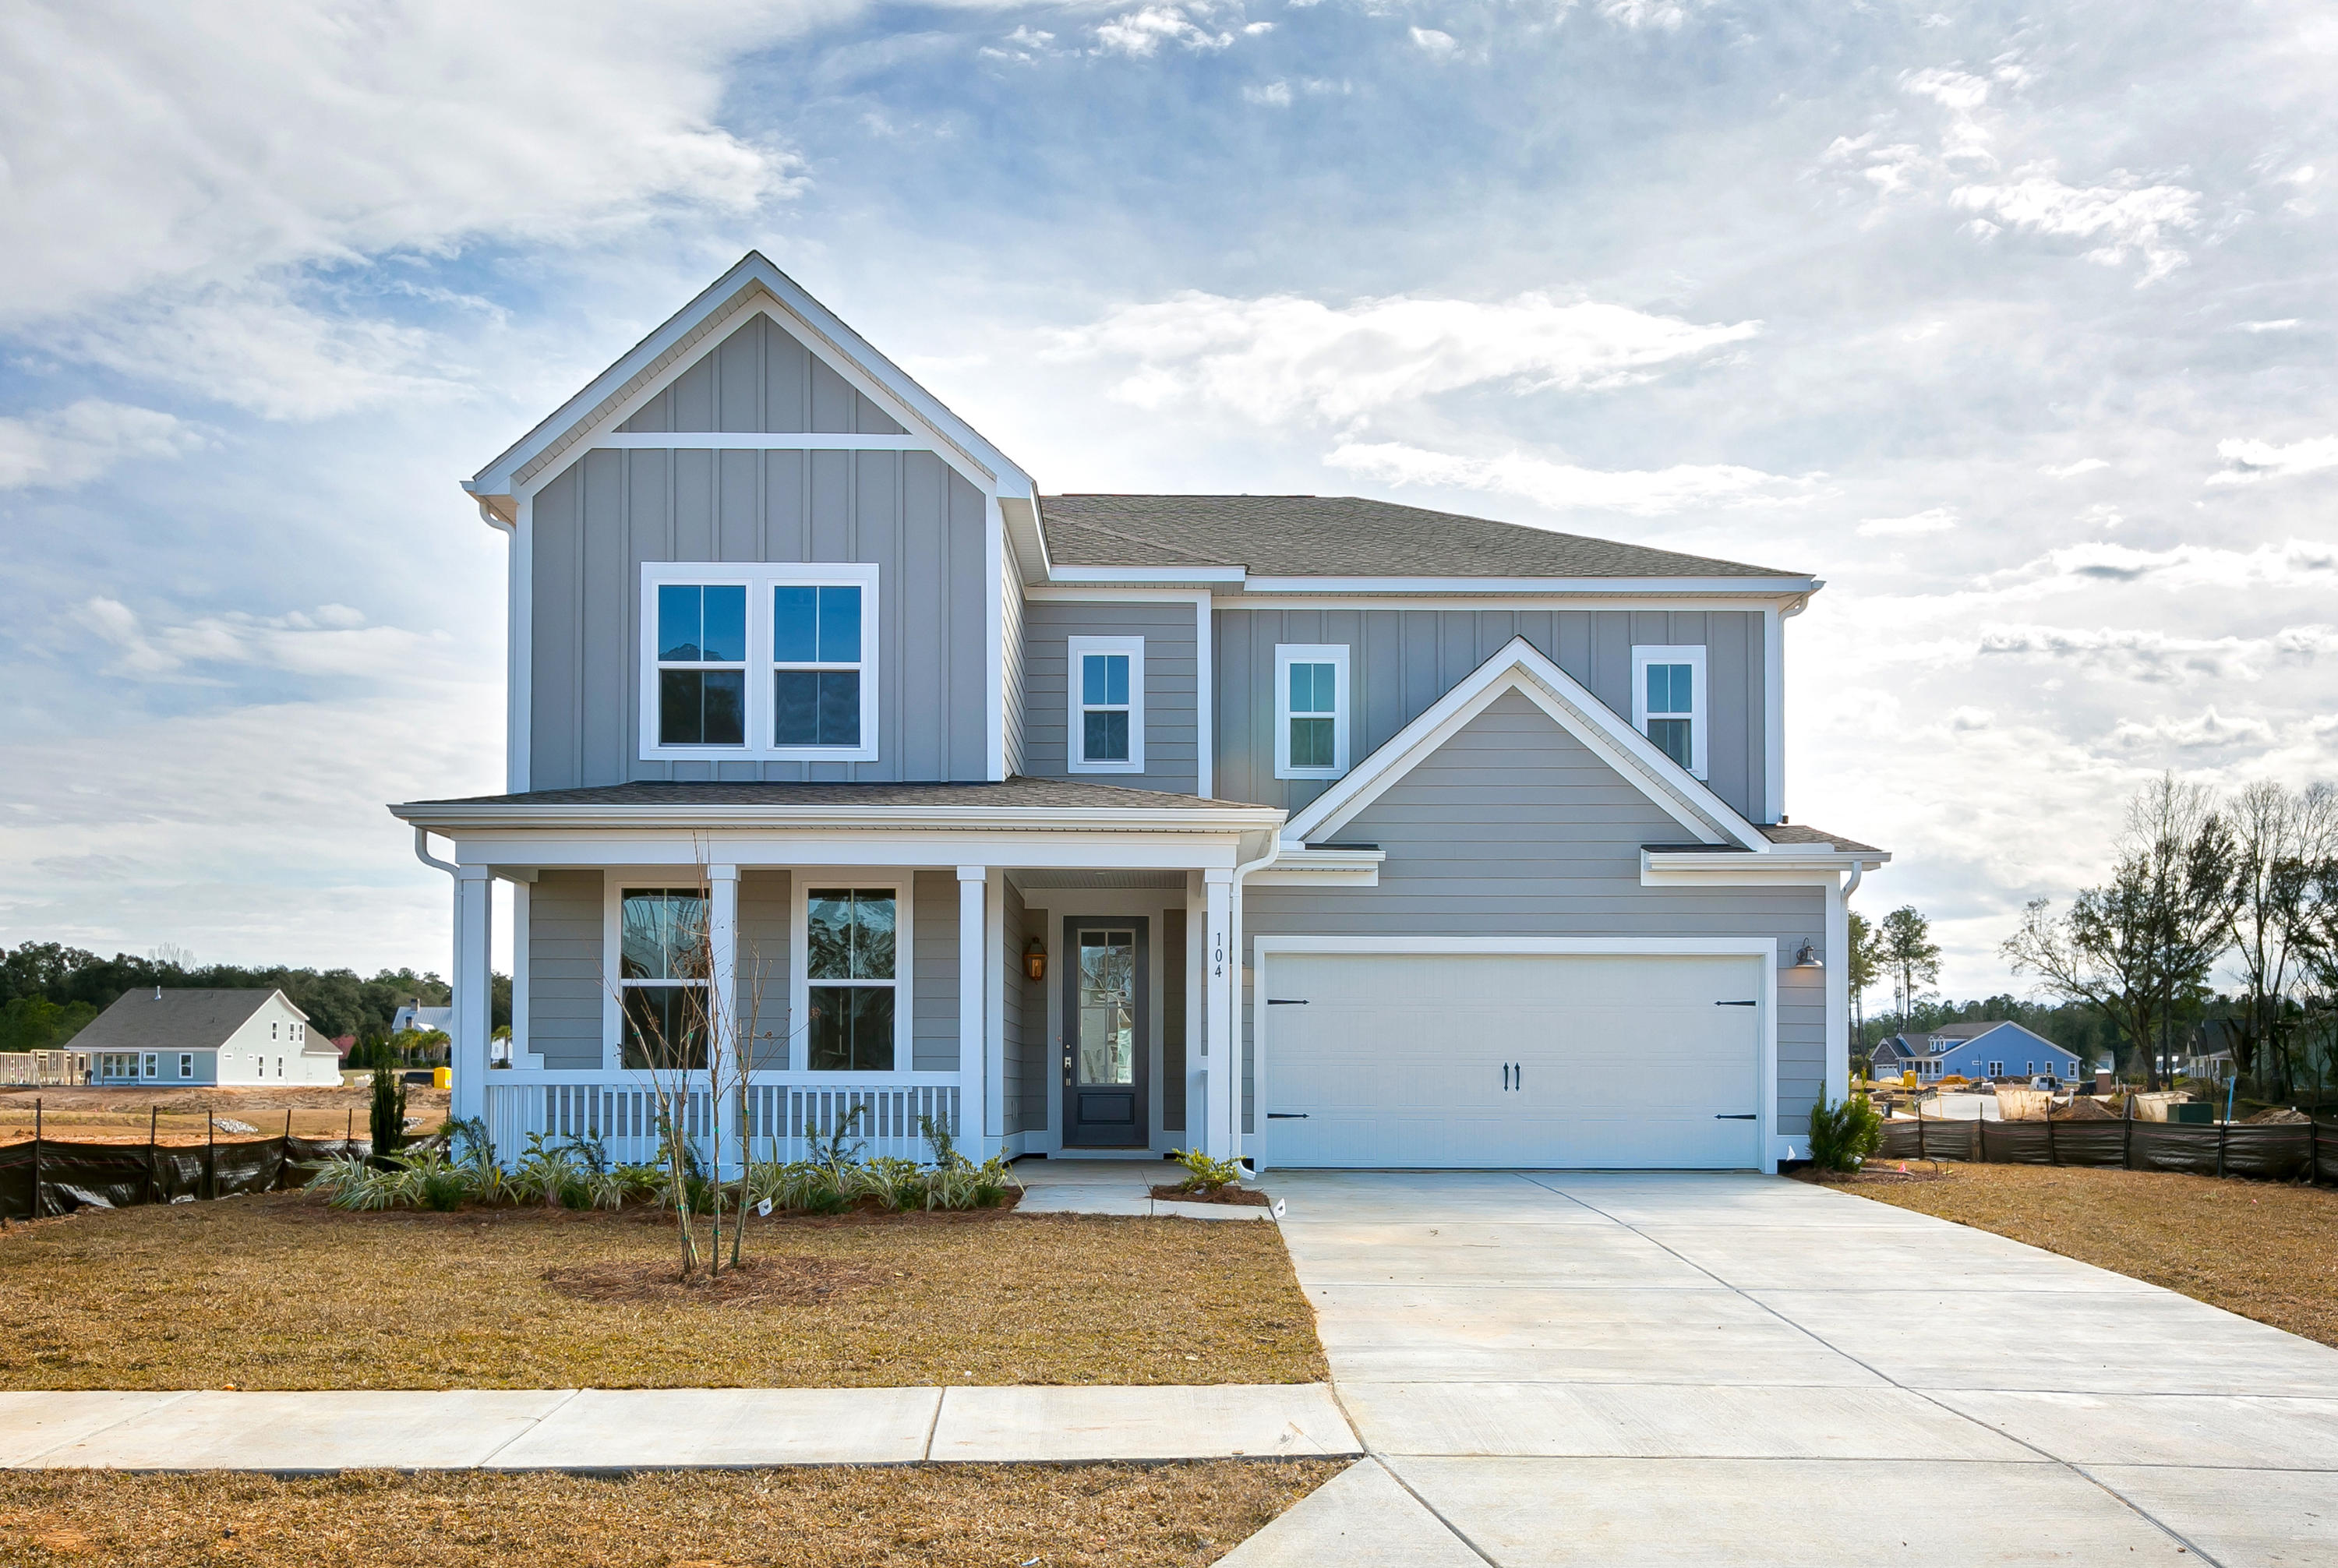 104 Coopers Hawk Drive Summerville, SC 29483